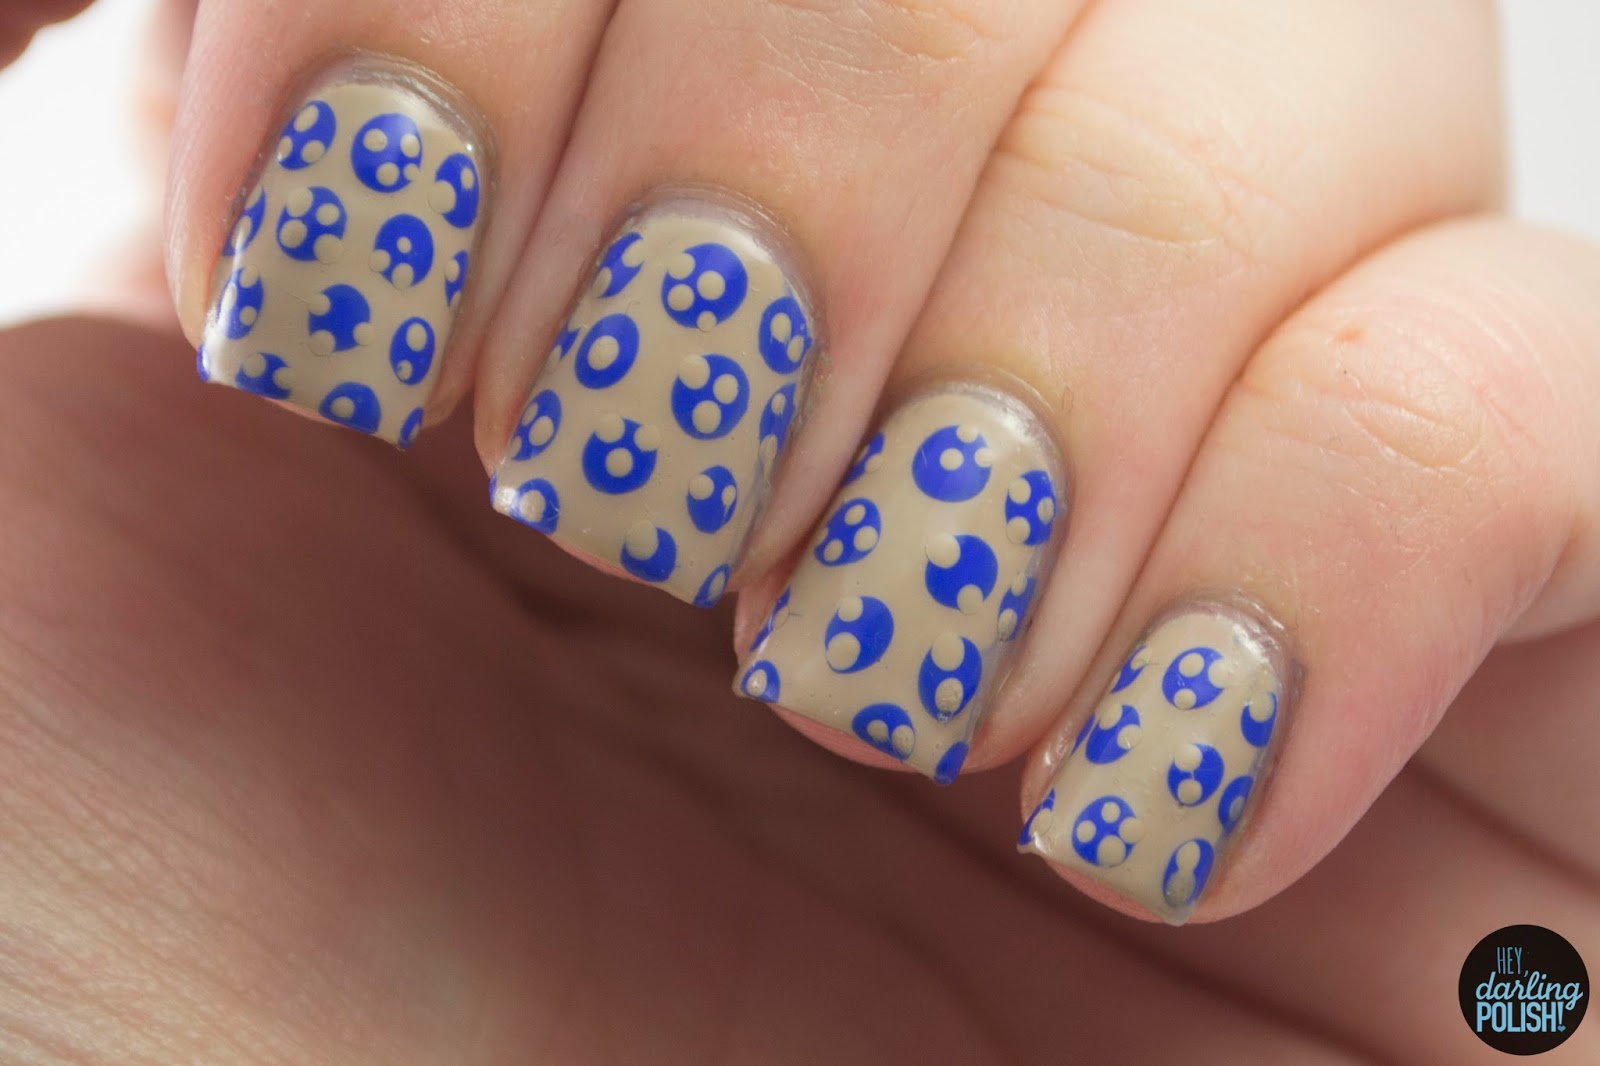 nails, nail art, nail polish, polka dots, dots, blue, neutral, pattern, hey darling polish